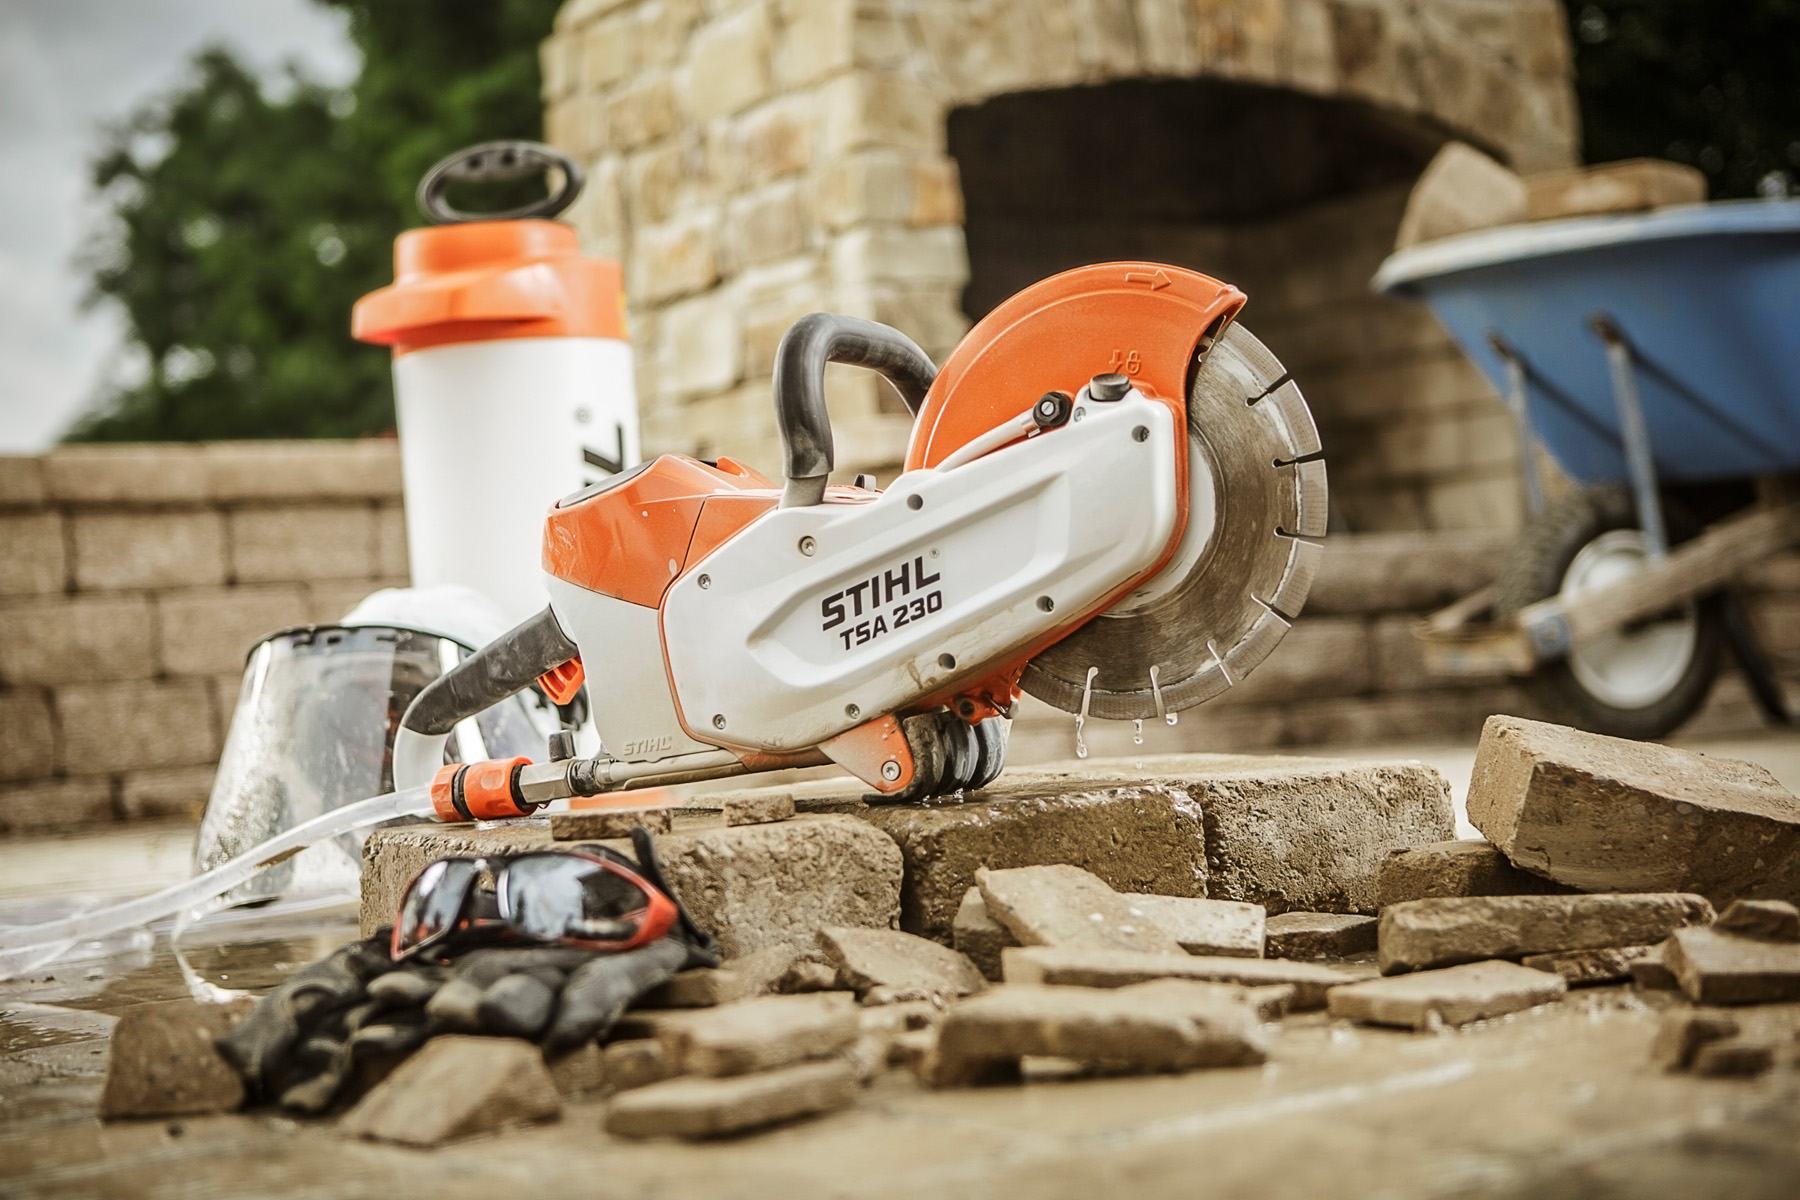 Stihl Tsa 230 Battery Operated Cut Off Saw Cordless